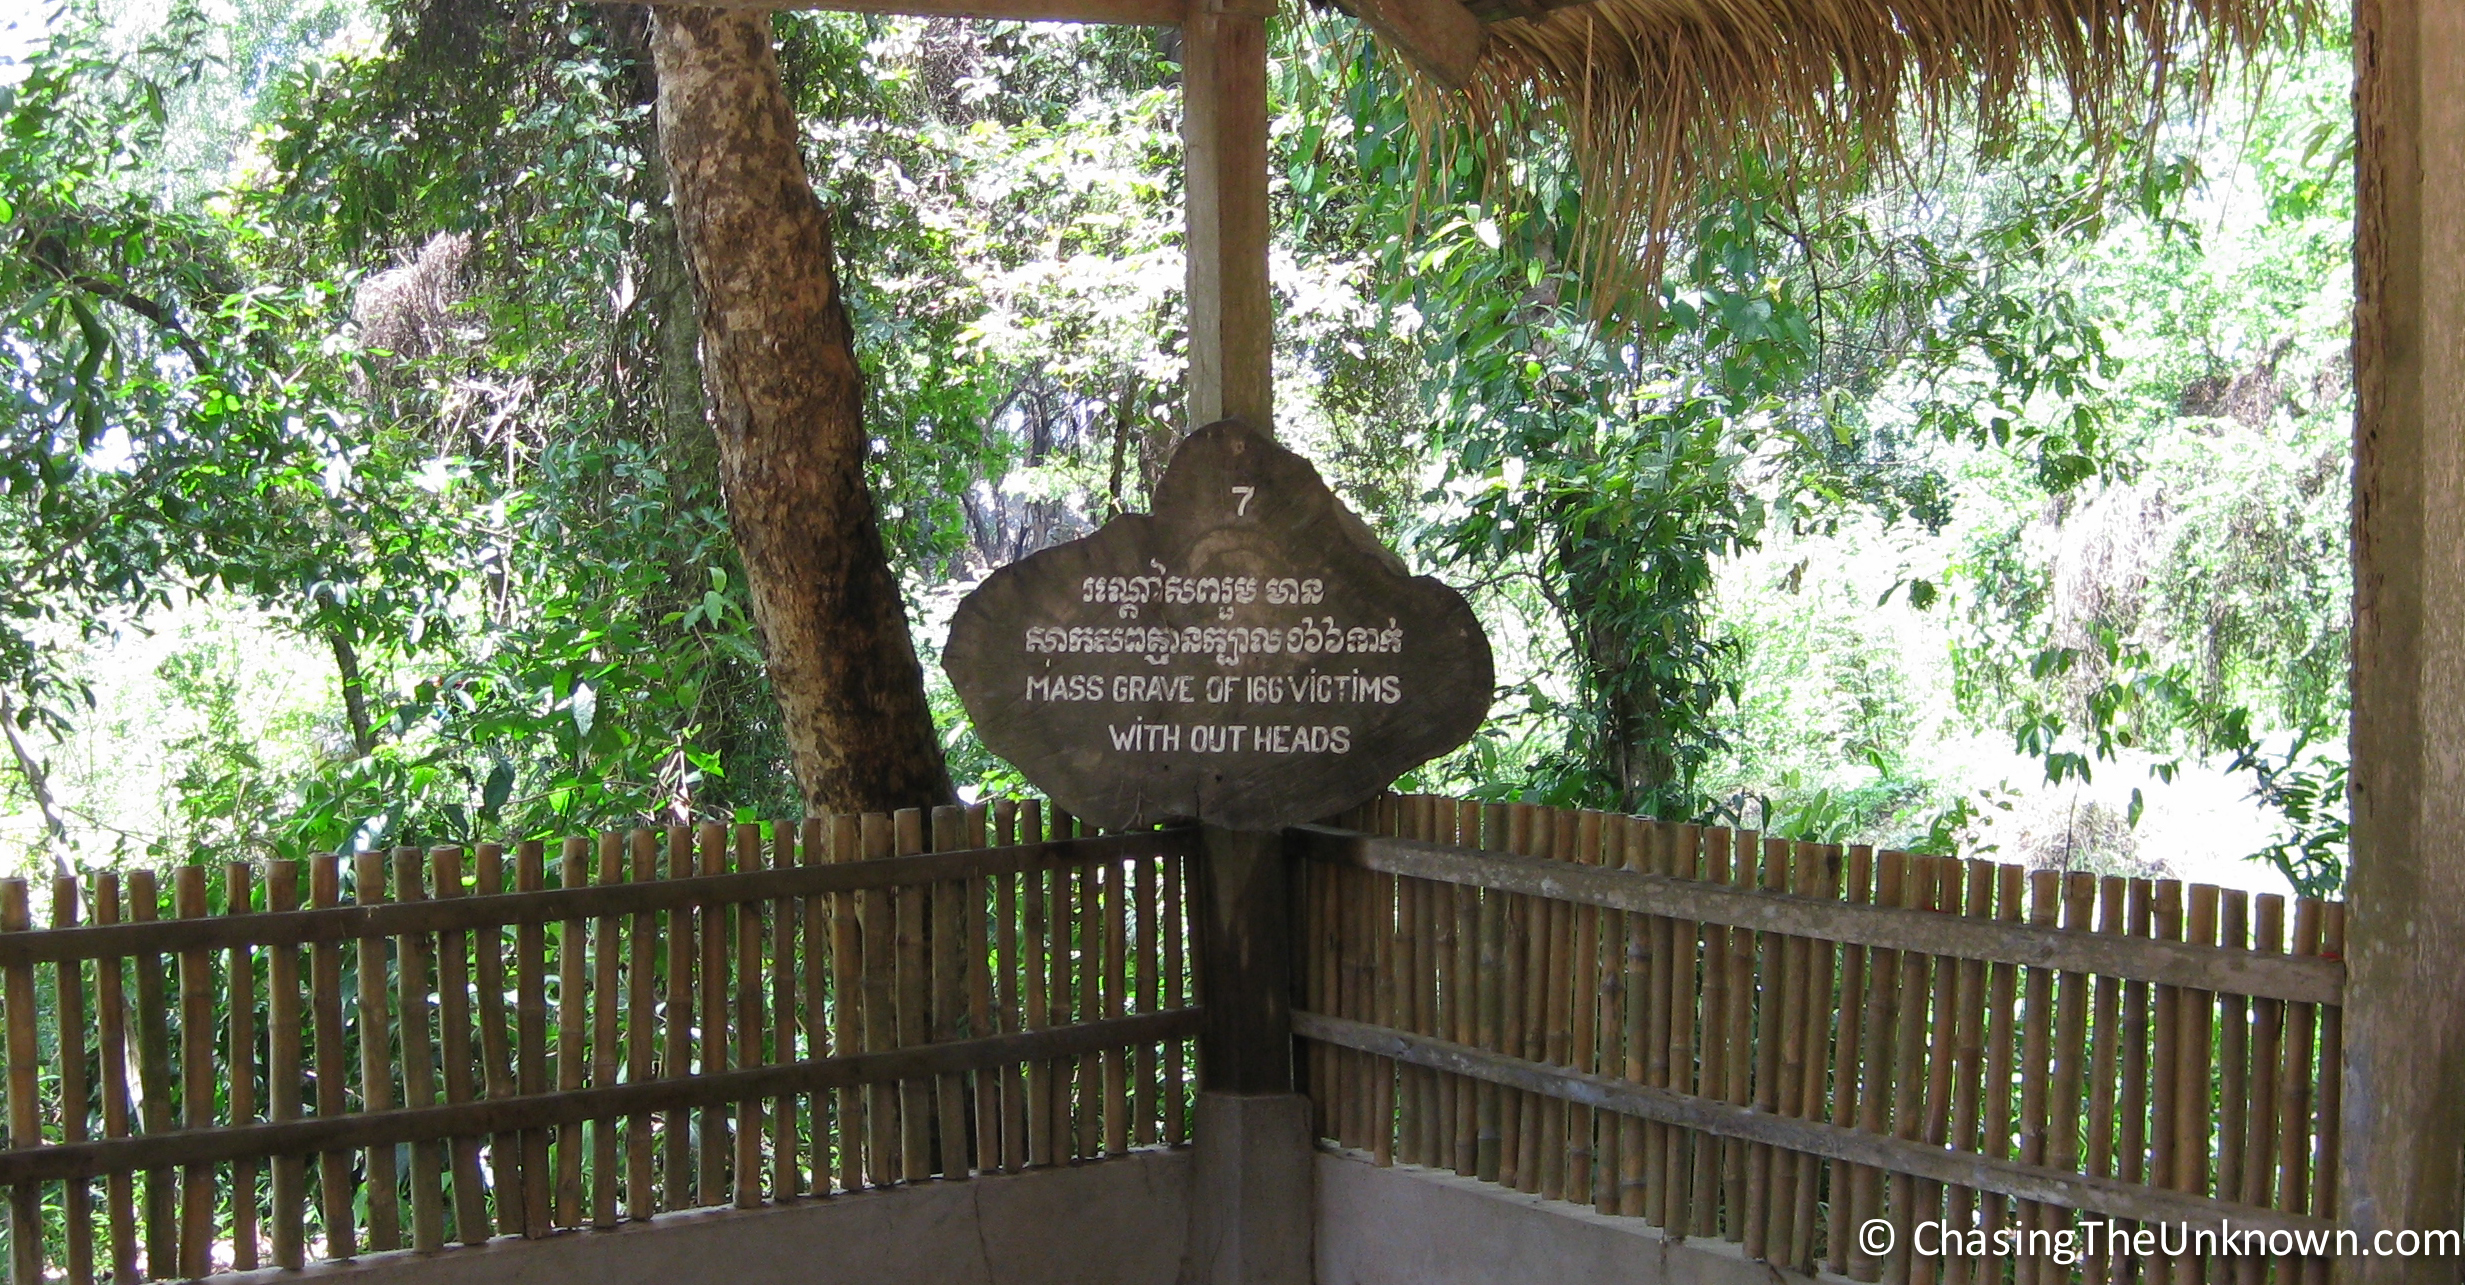 Not for the Fainthearted: A Visit to the Killing Fields and S-21 Prison